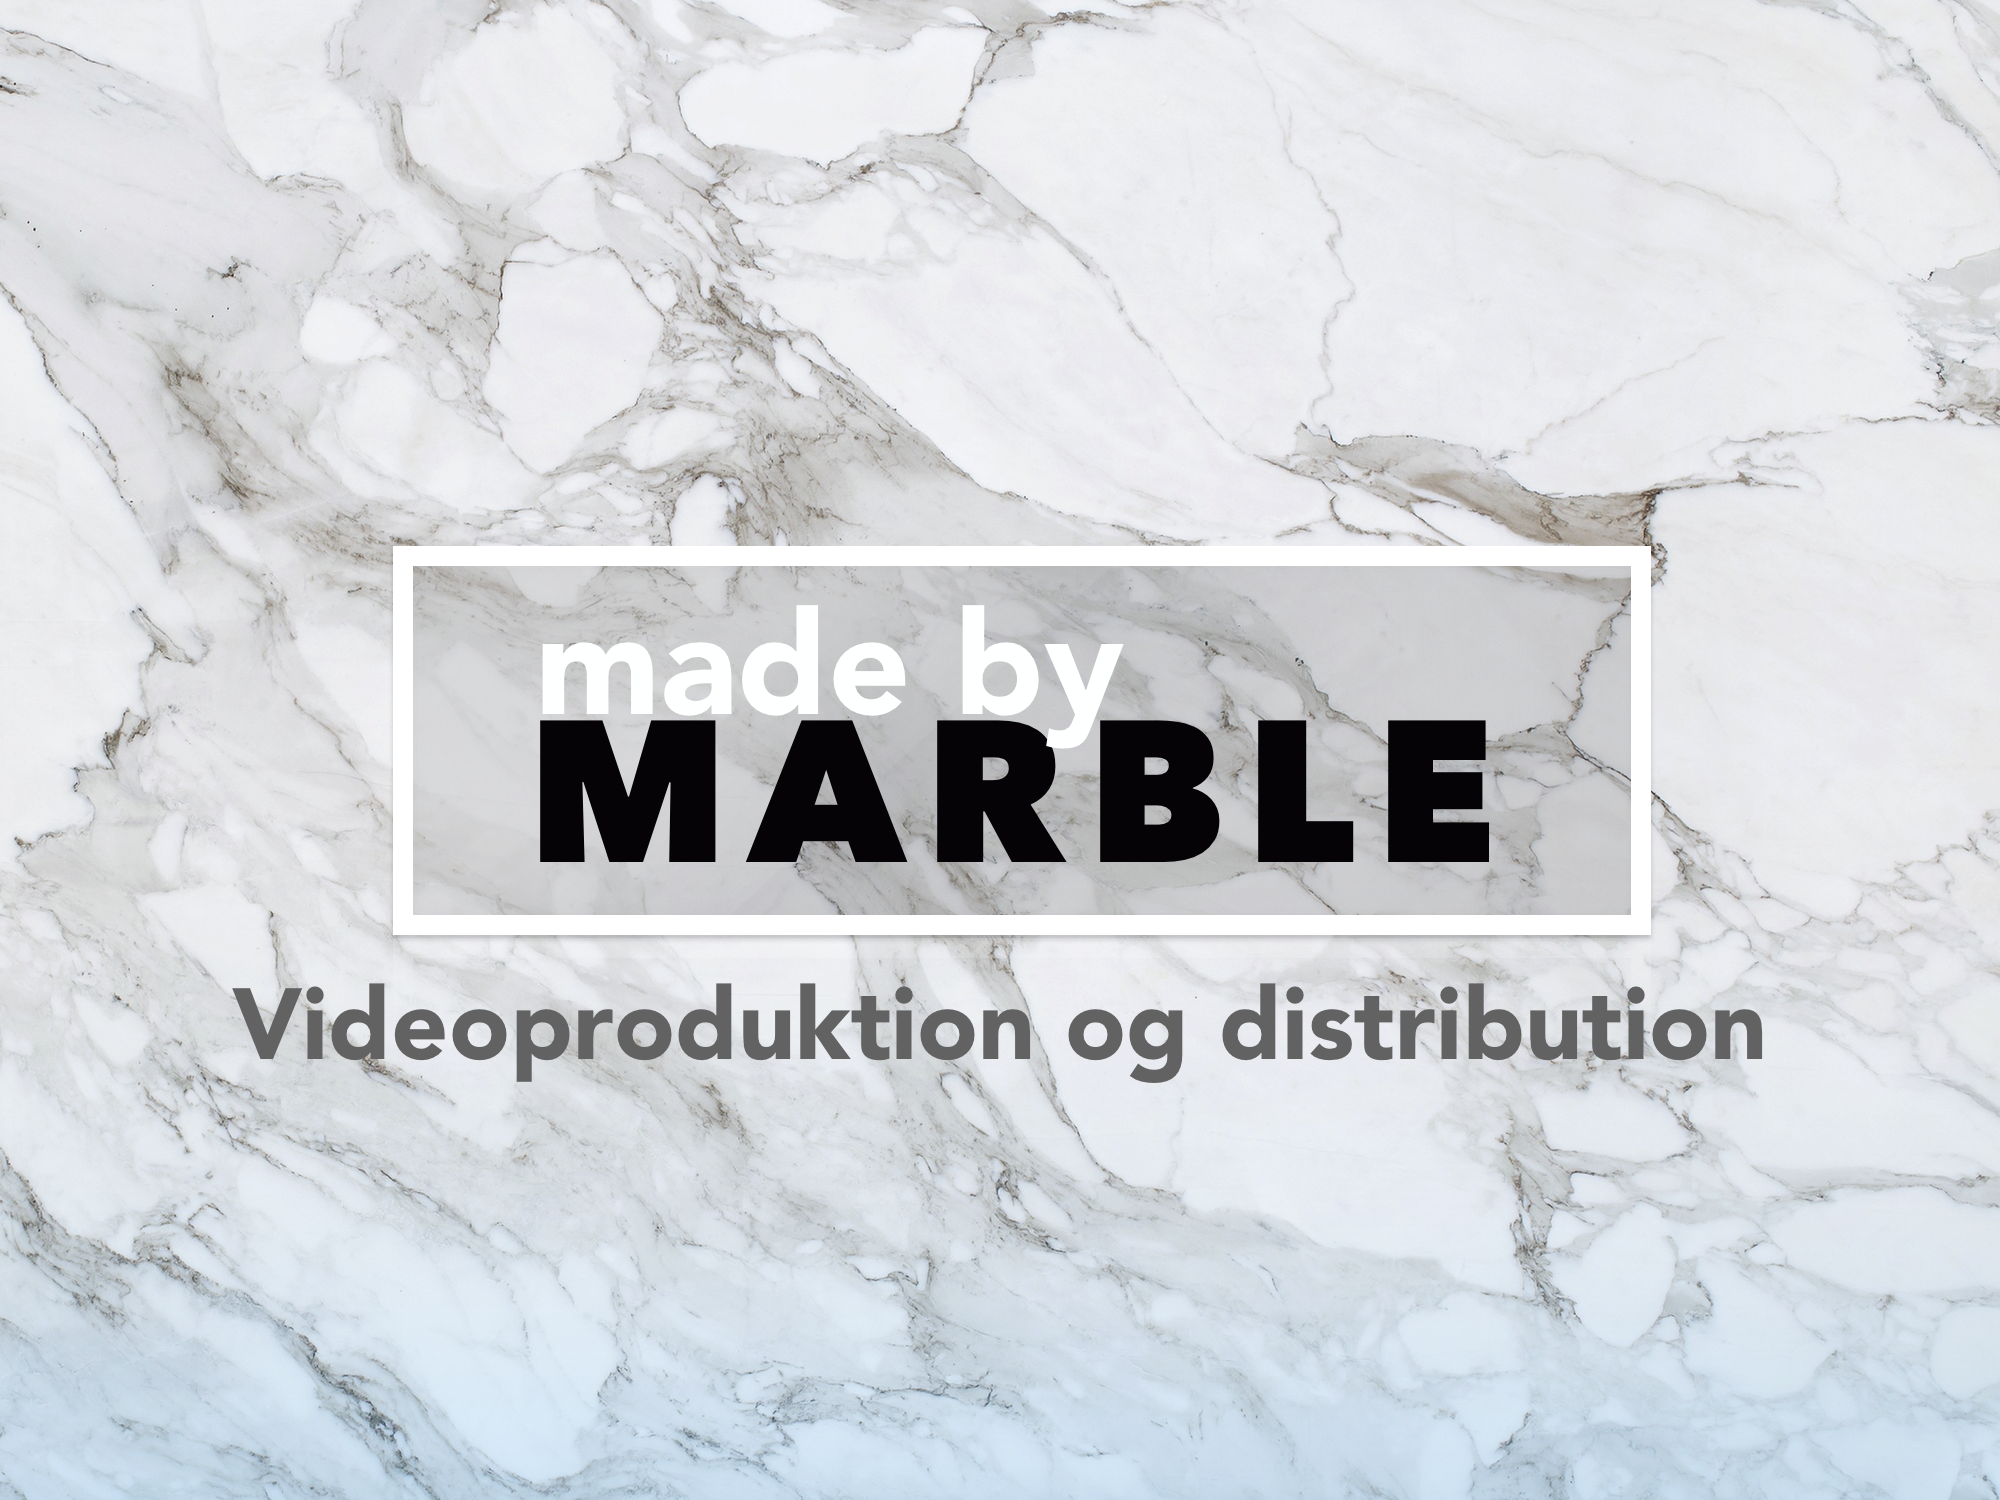 made by Marble